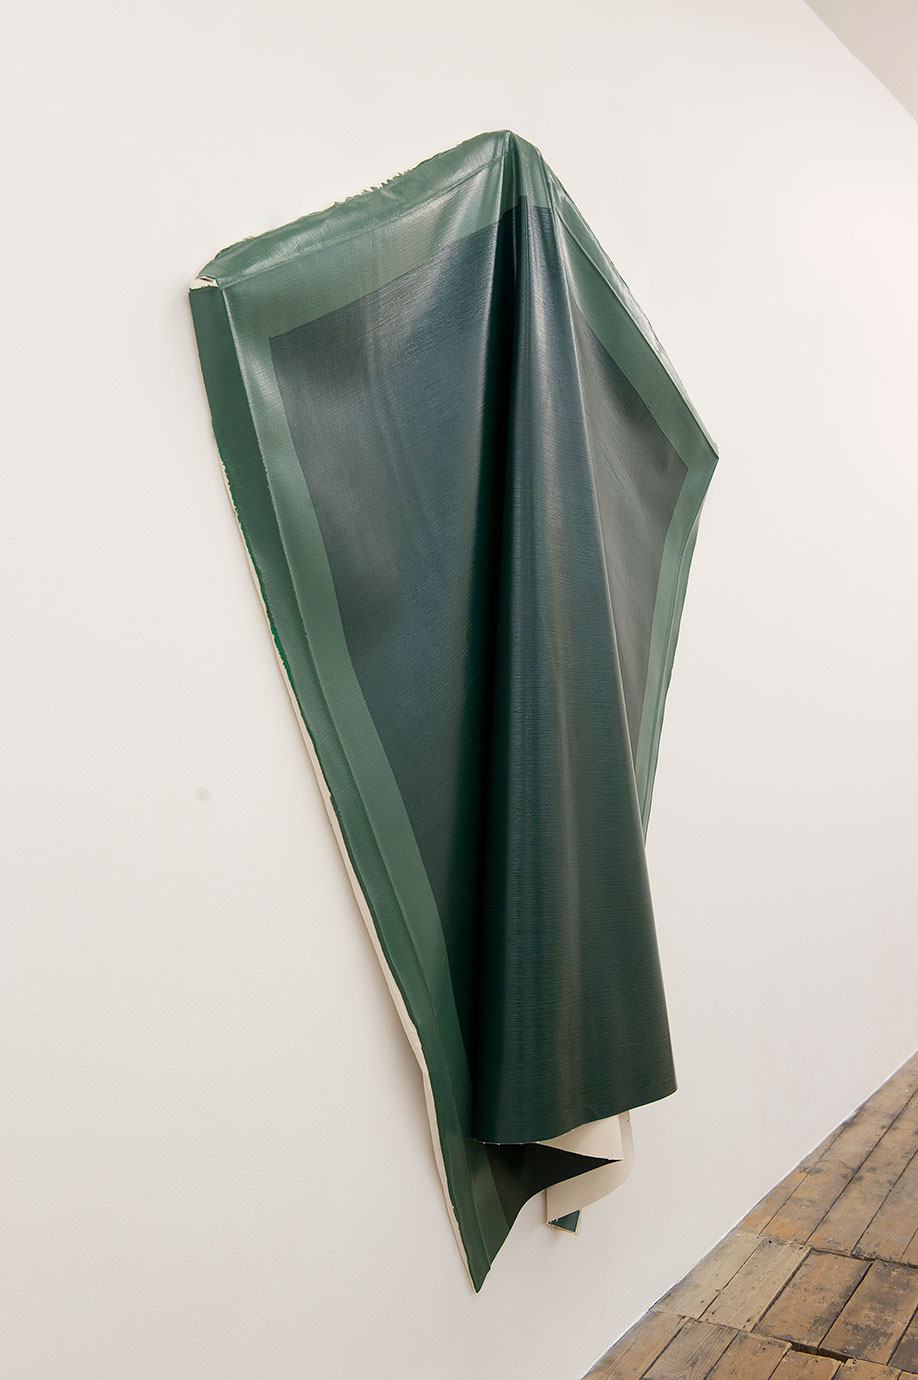 <b>Title:&nbsp;</b>Deflated Green<br /><b>Year:&nbsp;</b>2010<br /><b>Medium:&nbsp;</b>Oil on canvas<br /><b>Size:&nbsp;</b>153 x 180 cm